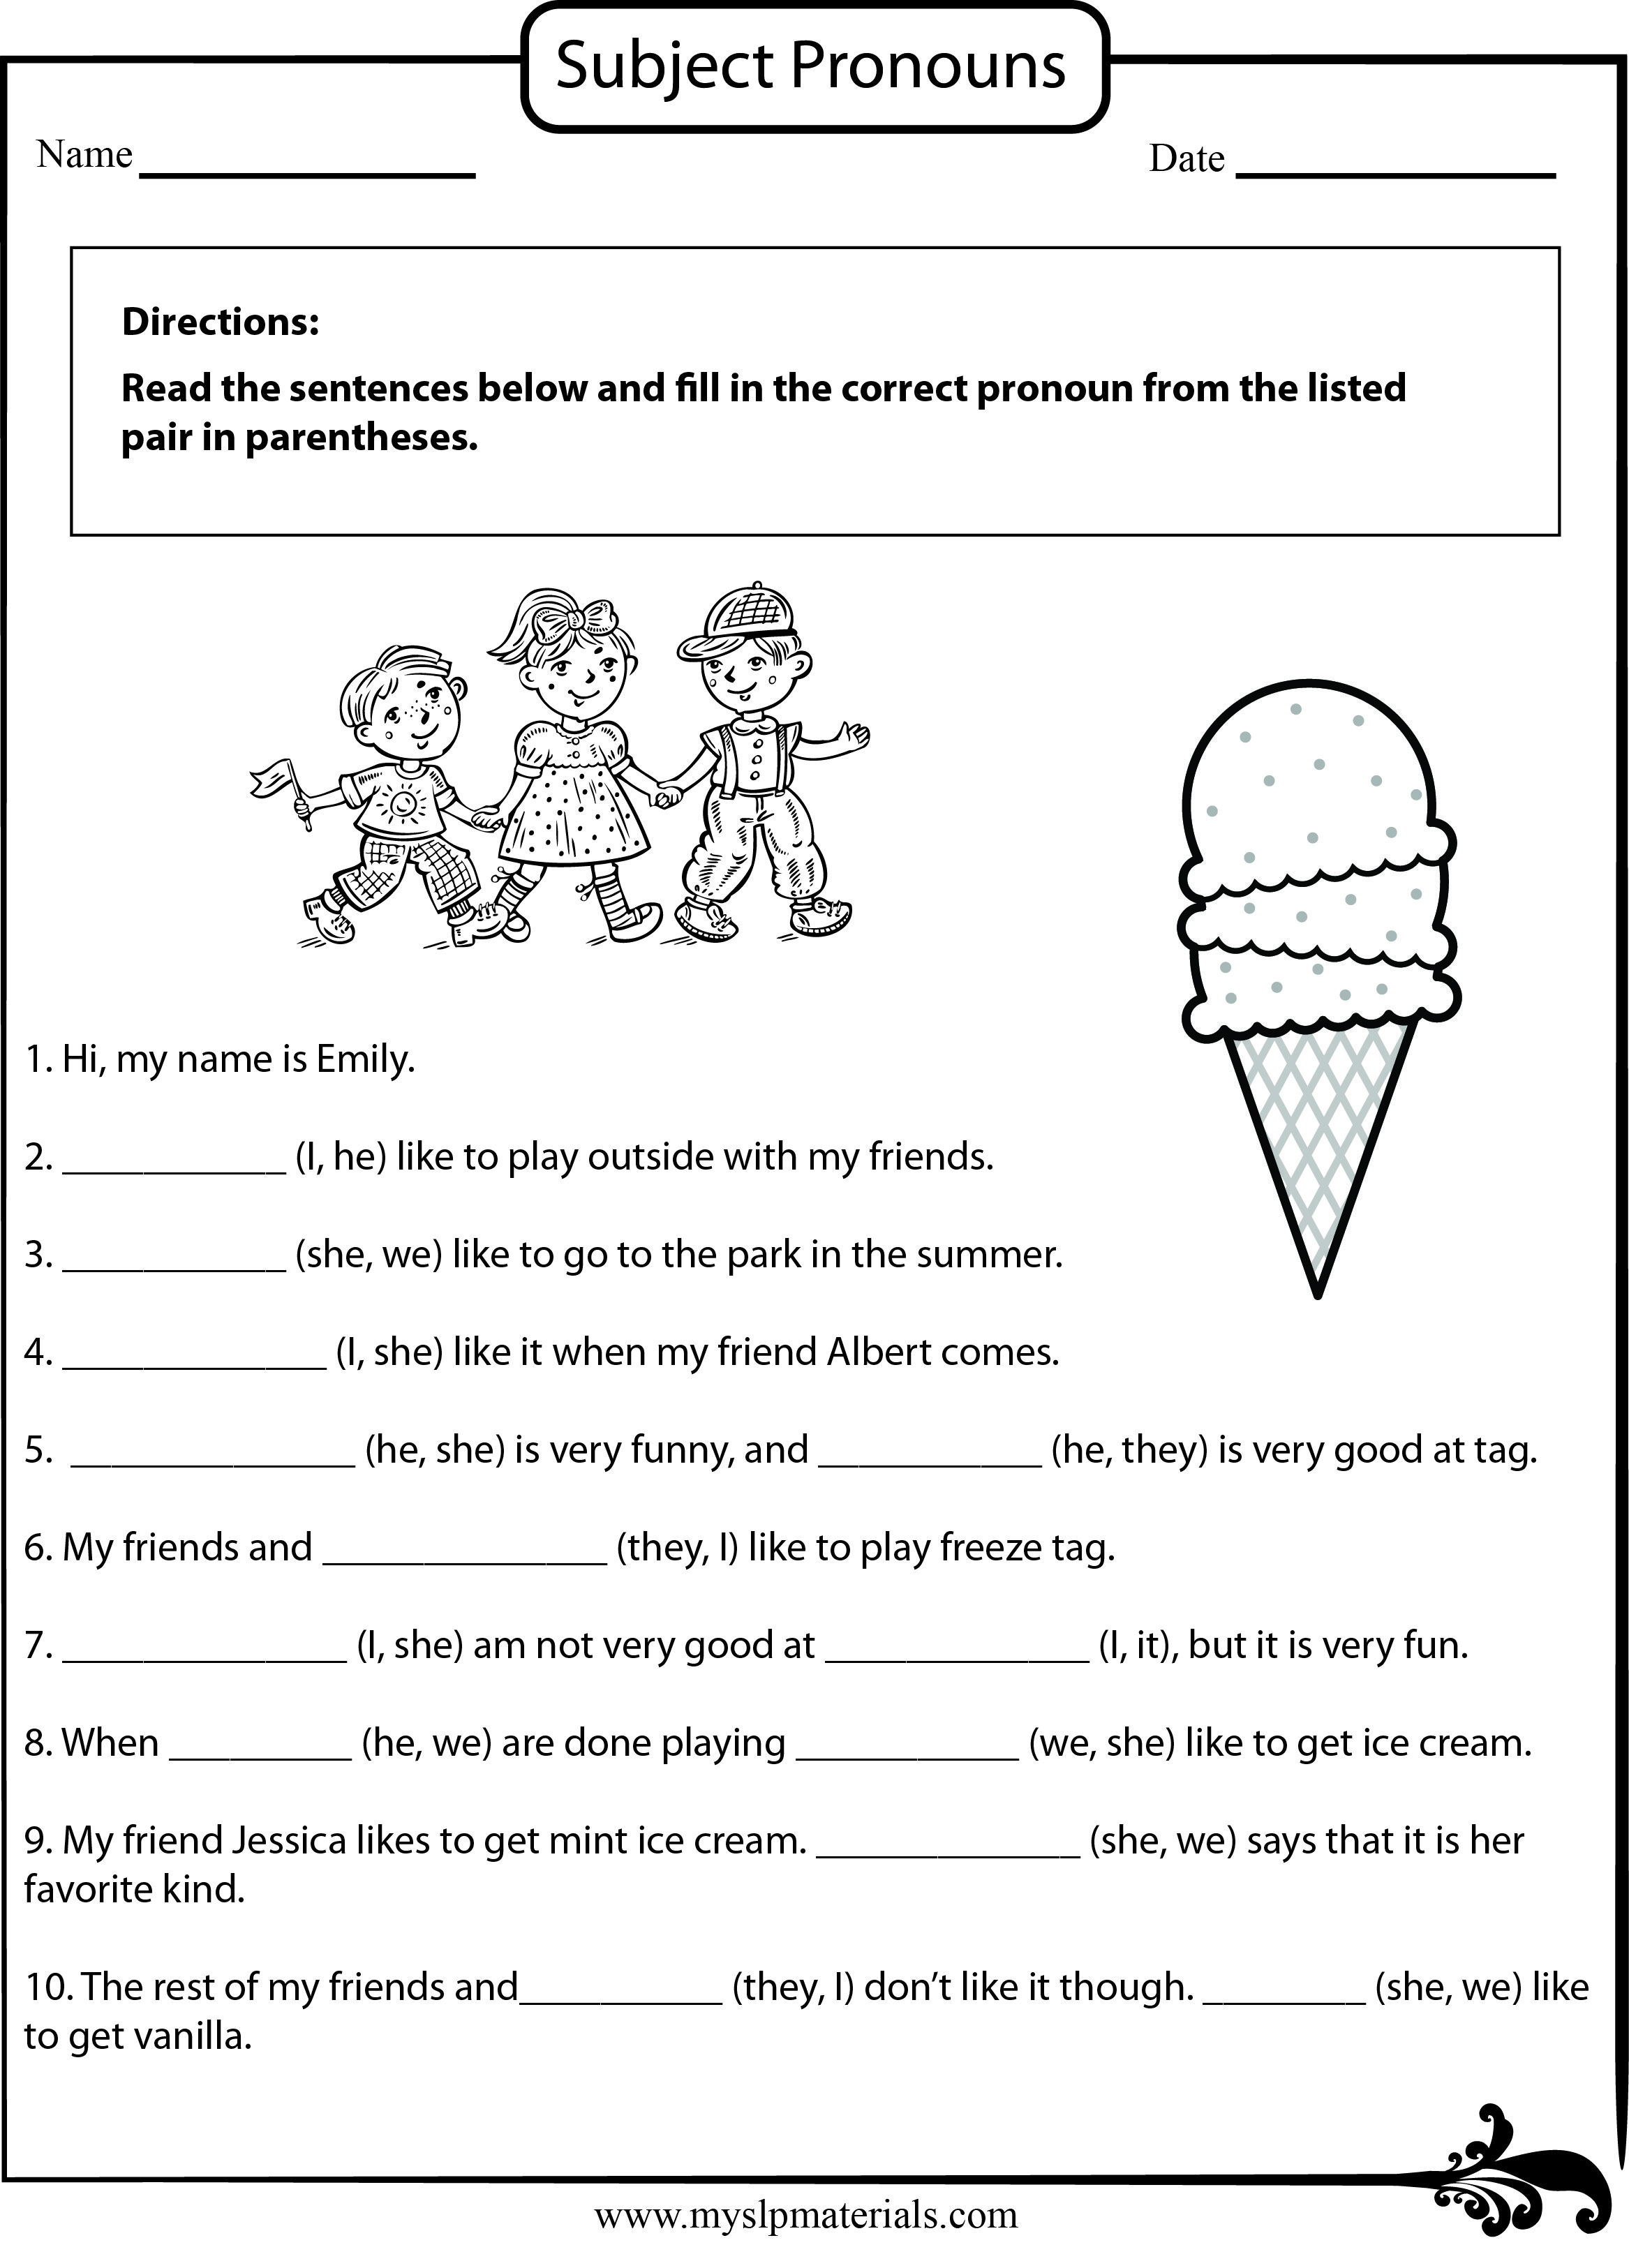 S Slpmaterials Subject Pronoun Speech Language Worksheet